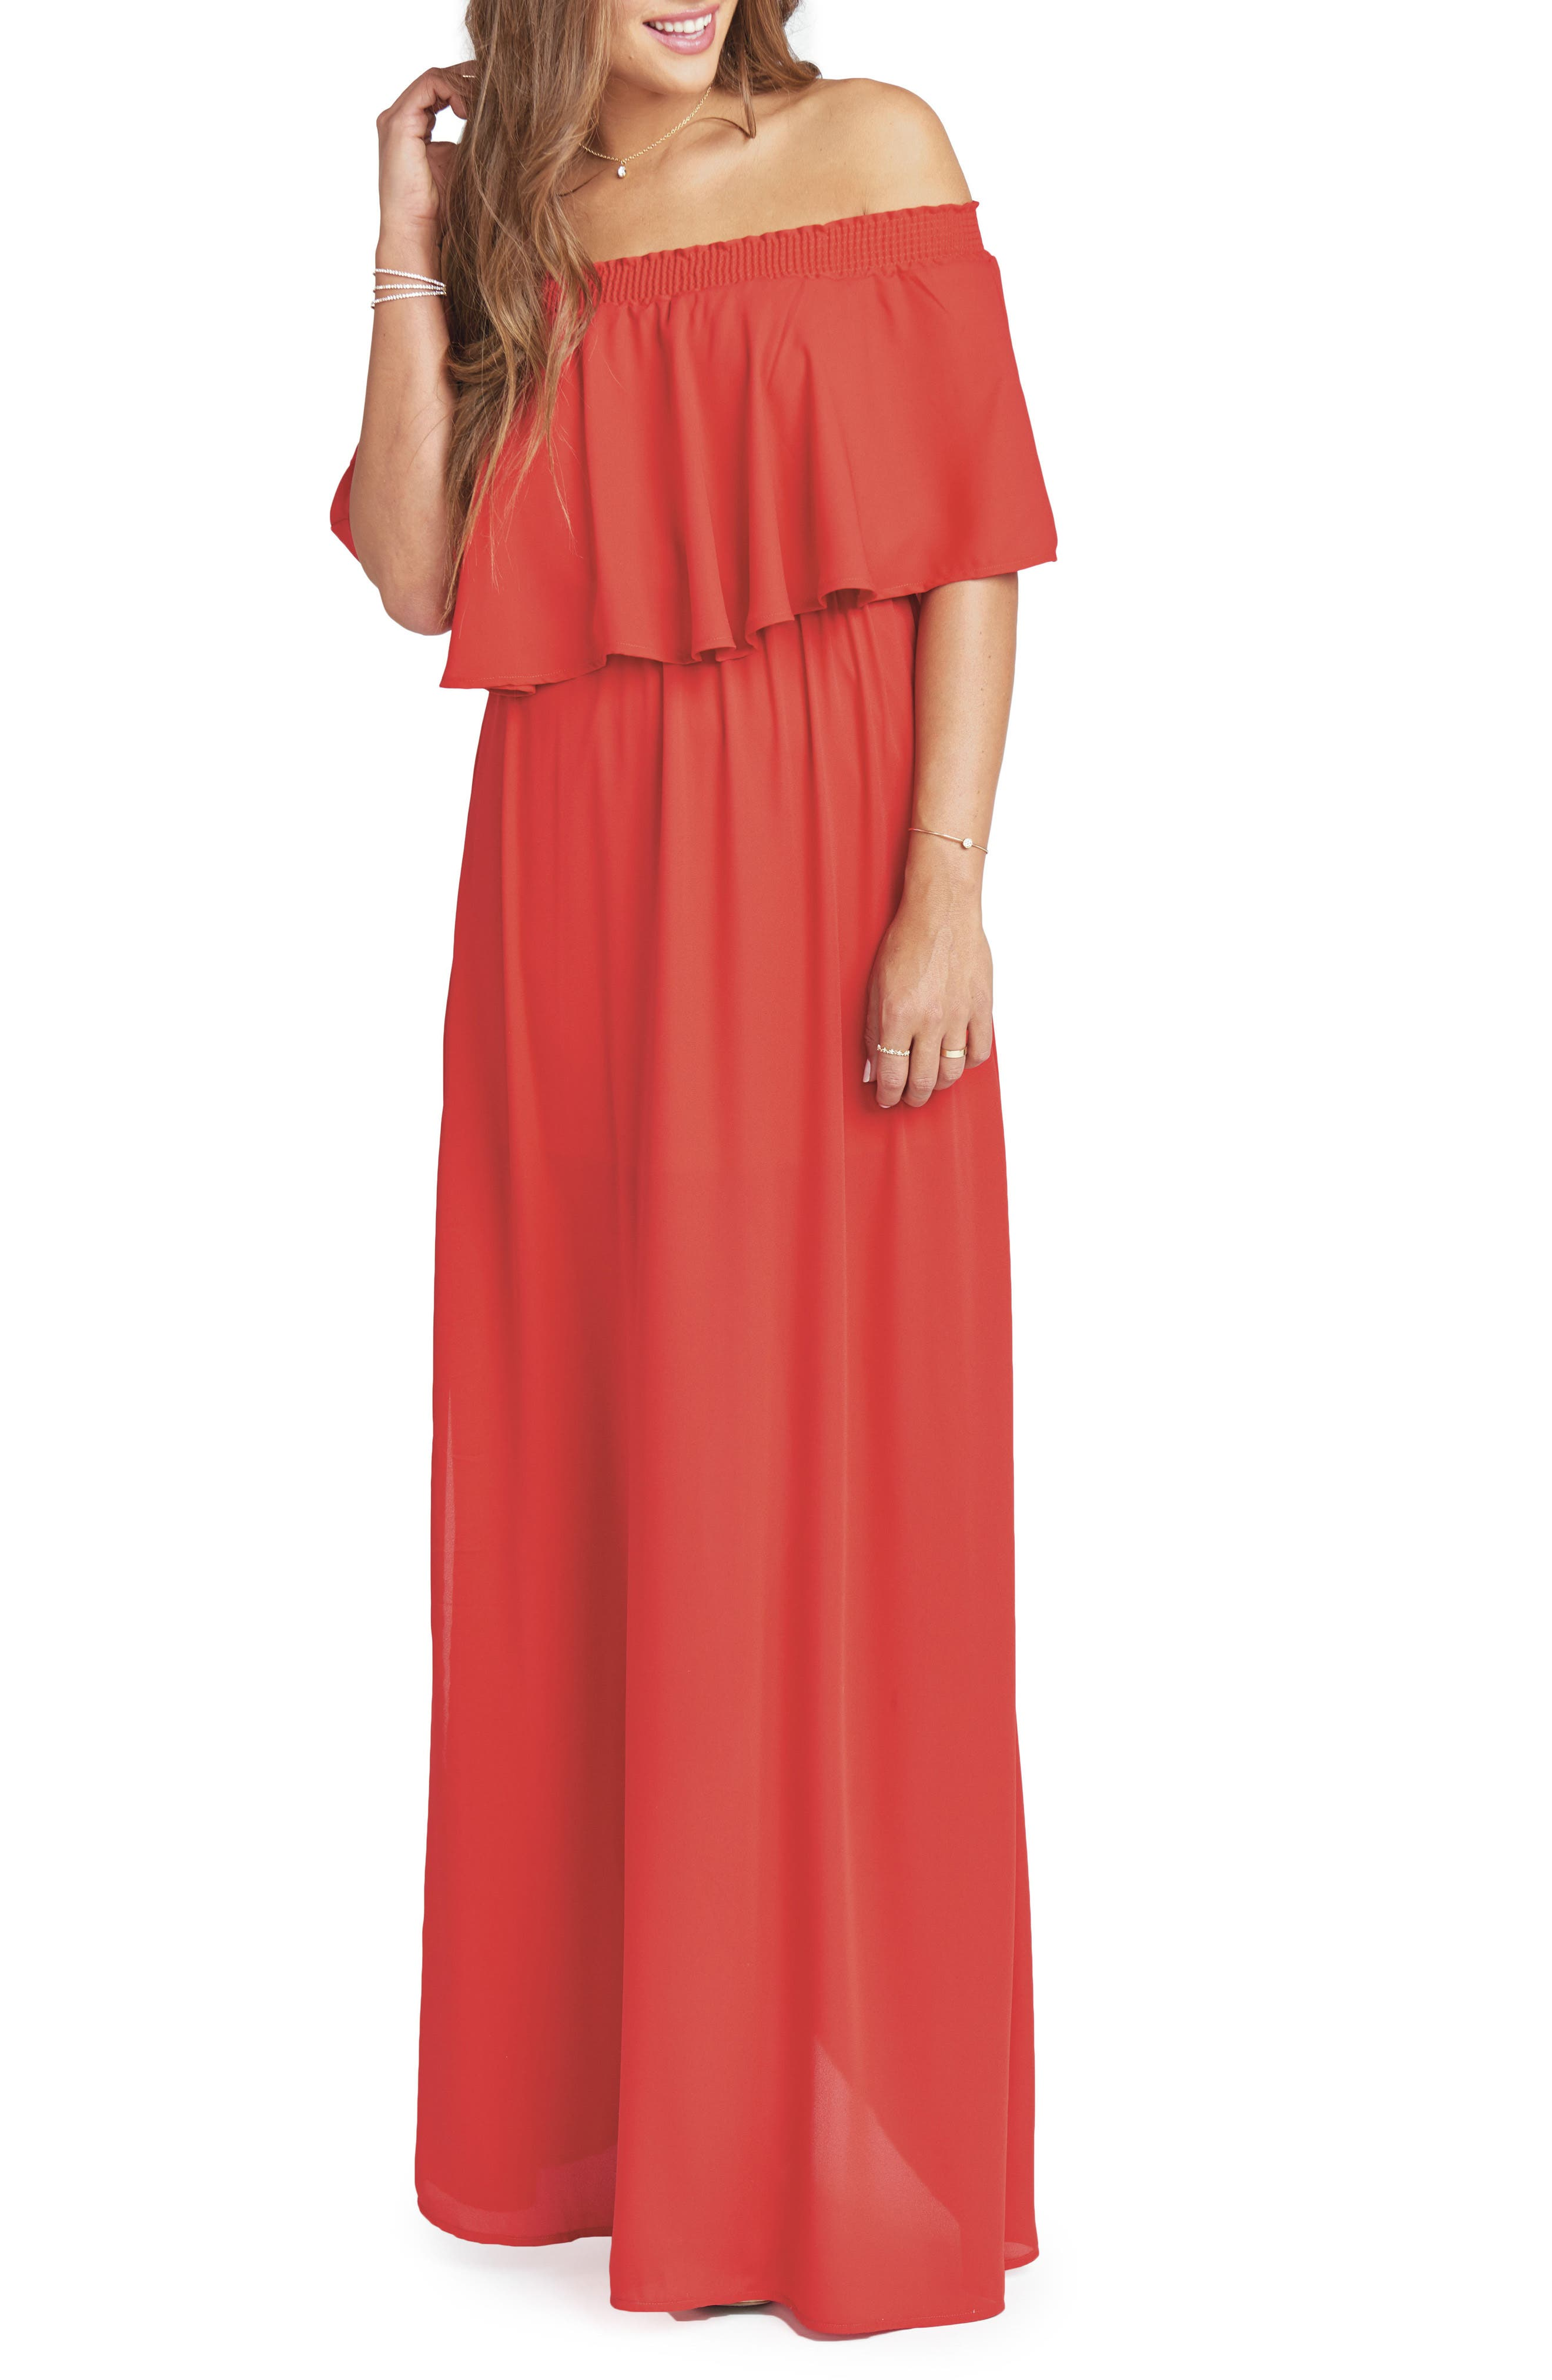 Hacienda Convertible Gown,                             Main thumbnail 1, color,                             Lady In Red Crisp